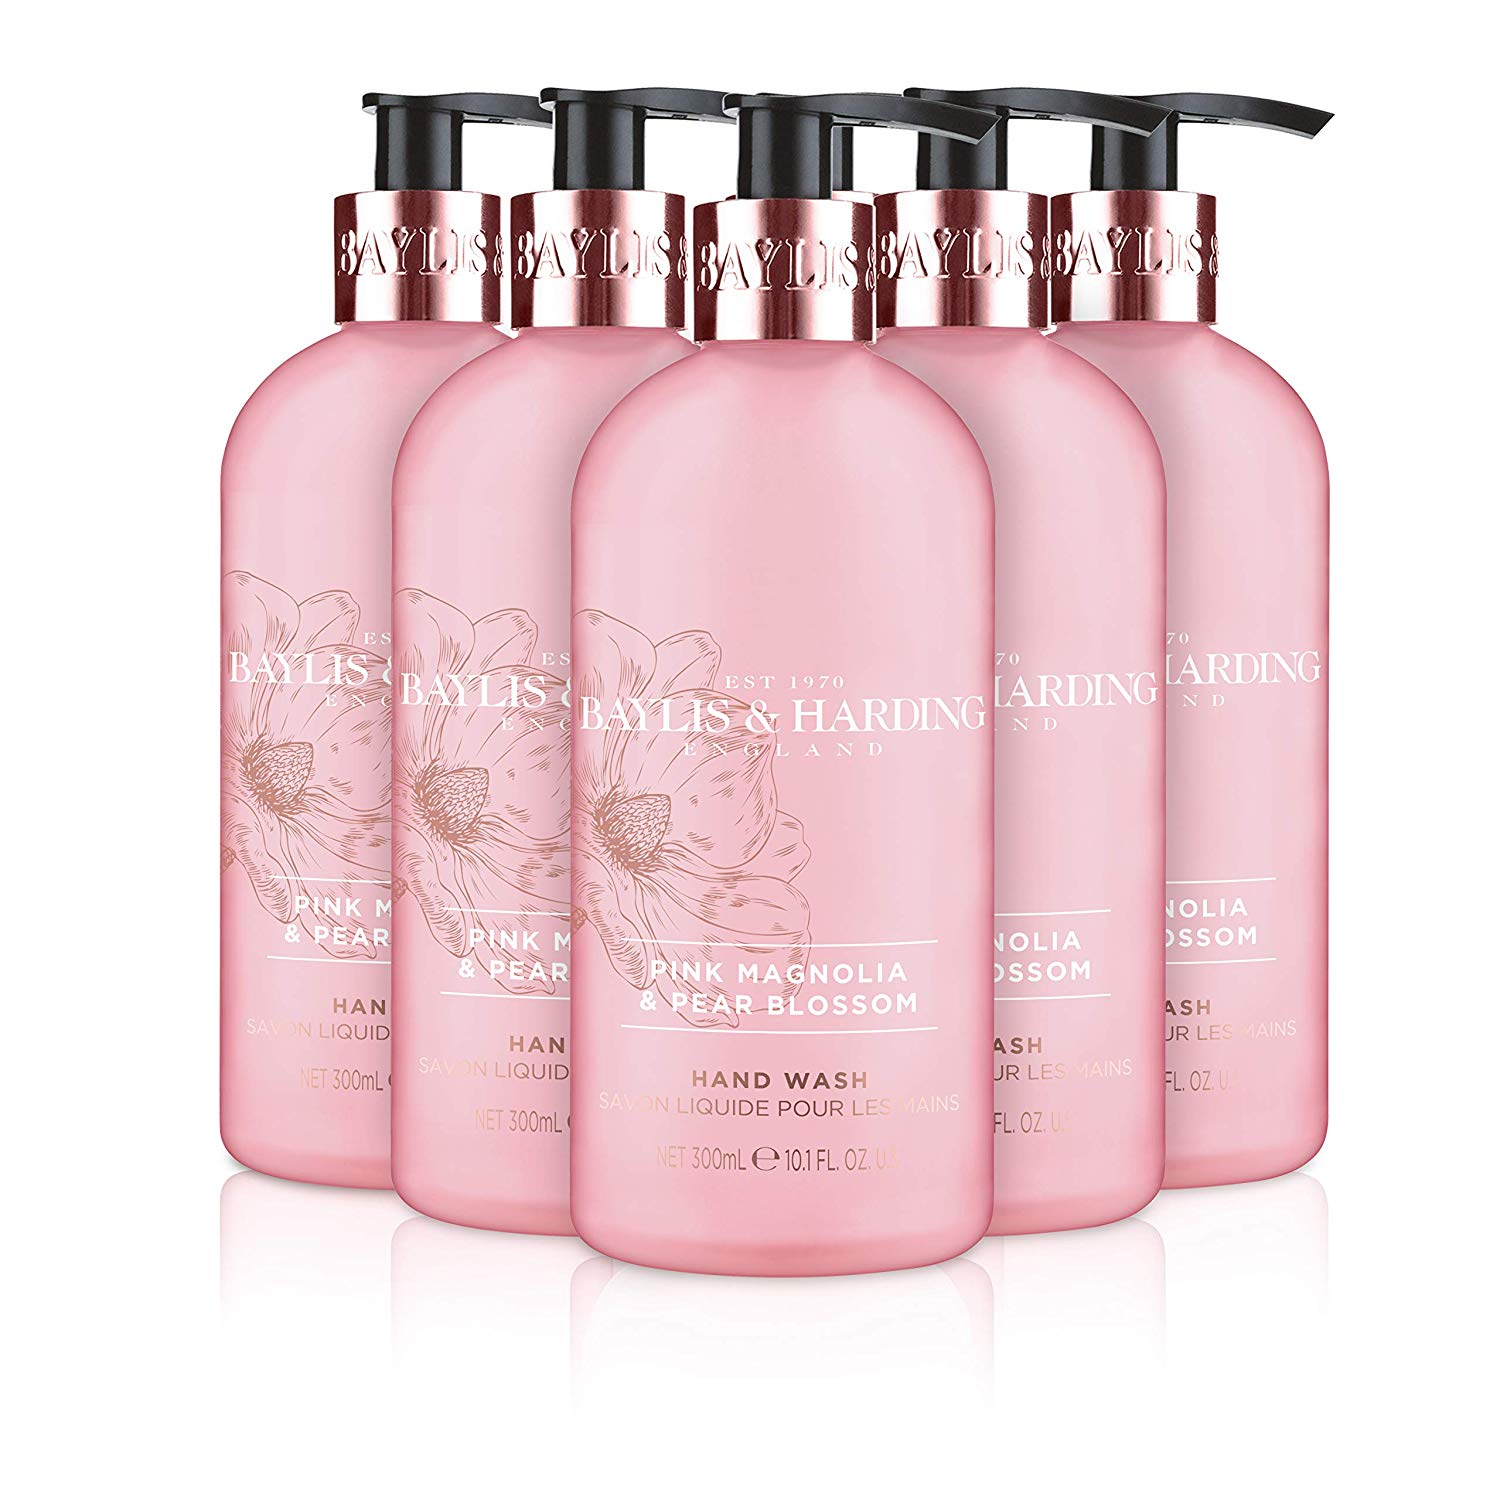 Baylis & Harding Hand Wash, Pink Magnolia and Pear Blossom, 300 ml, Pack of 6